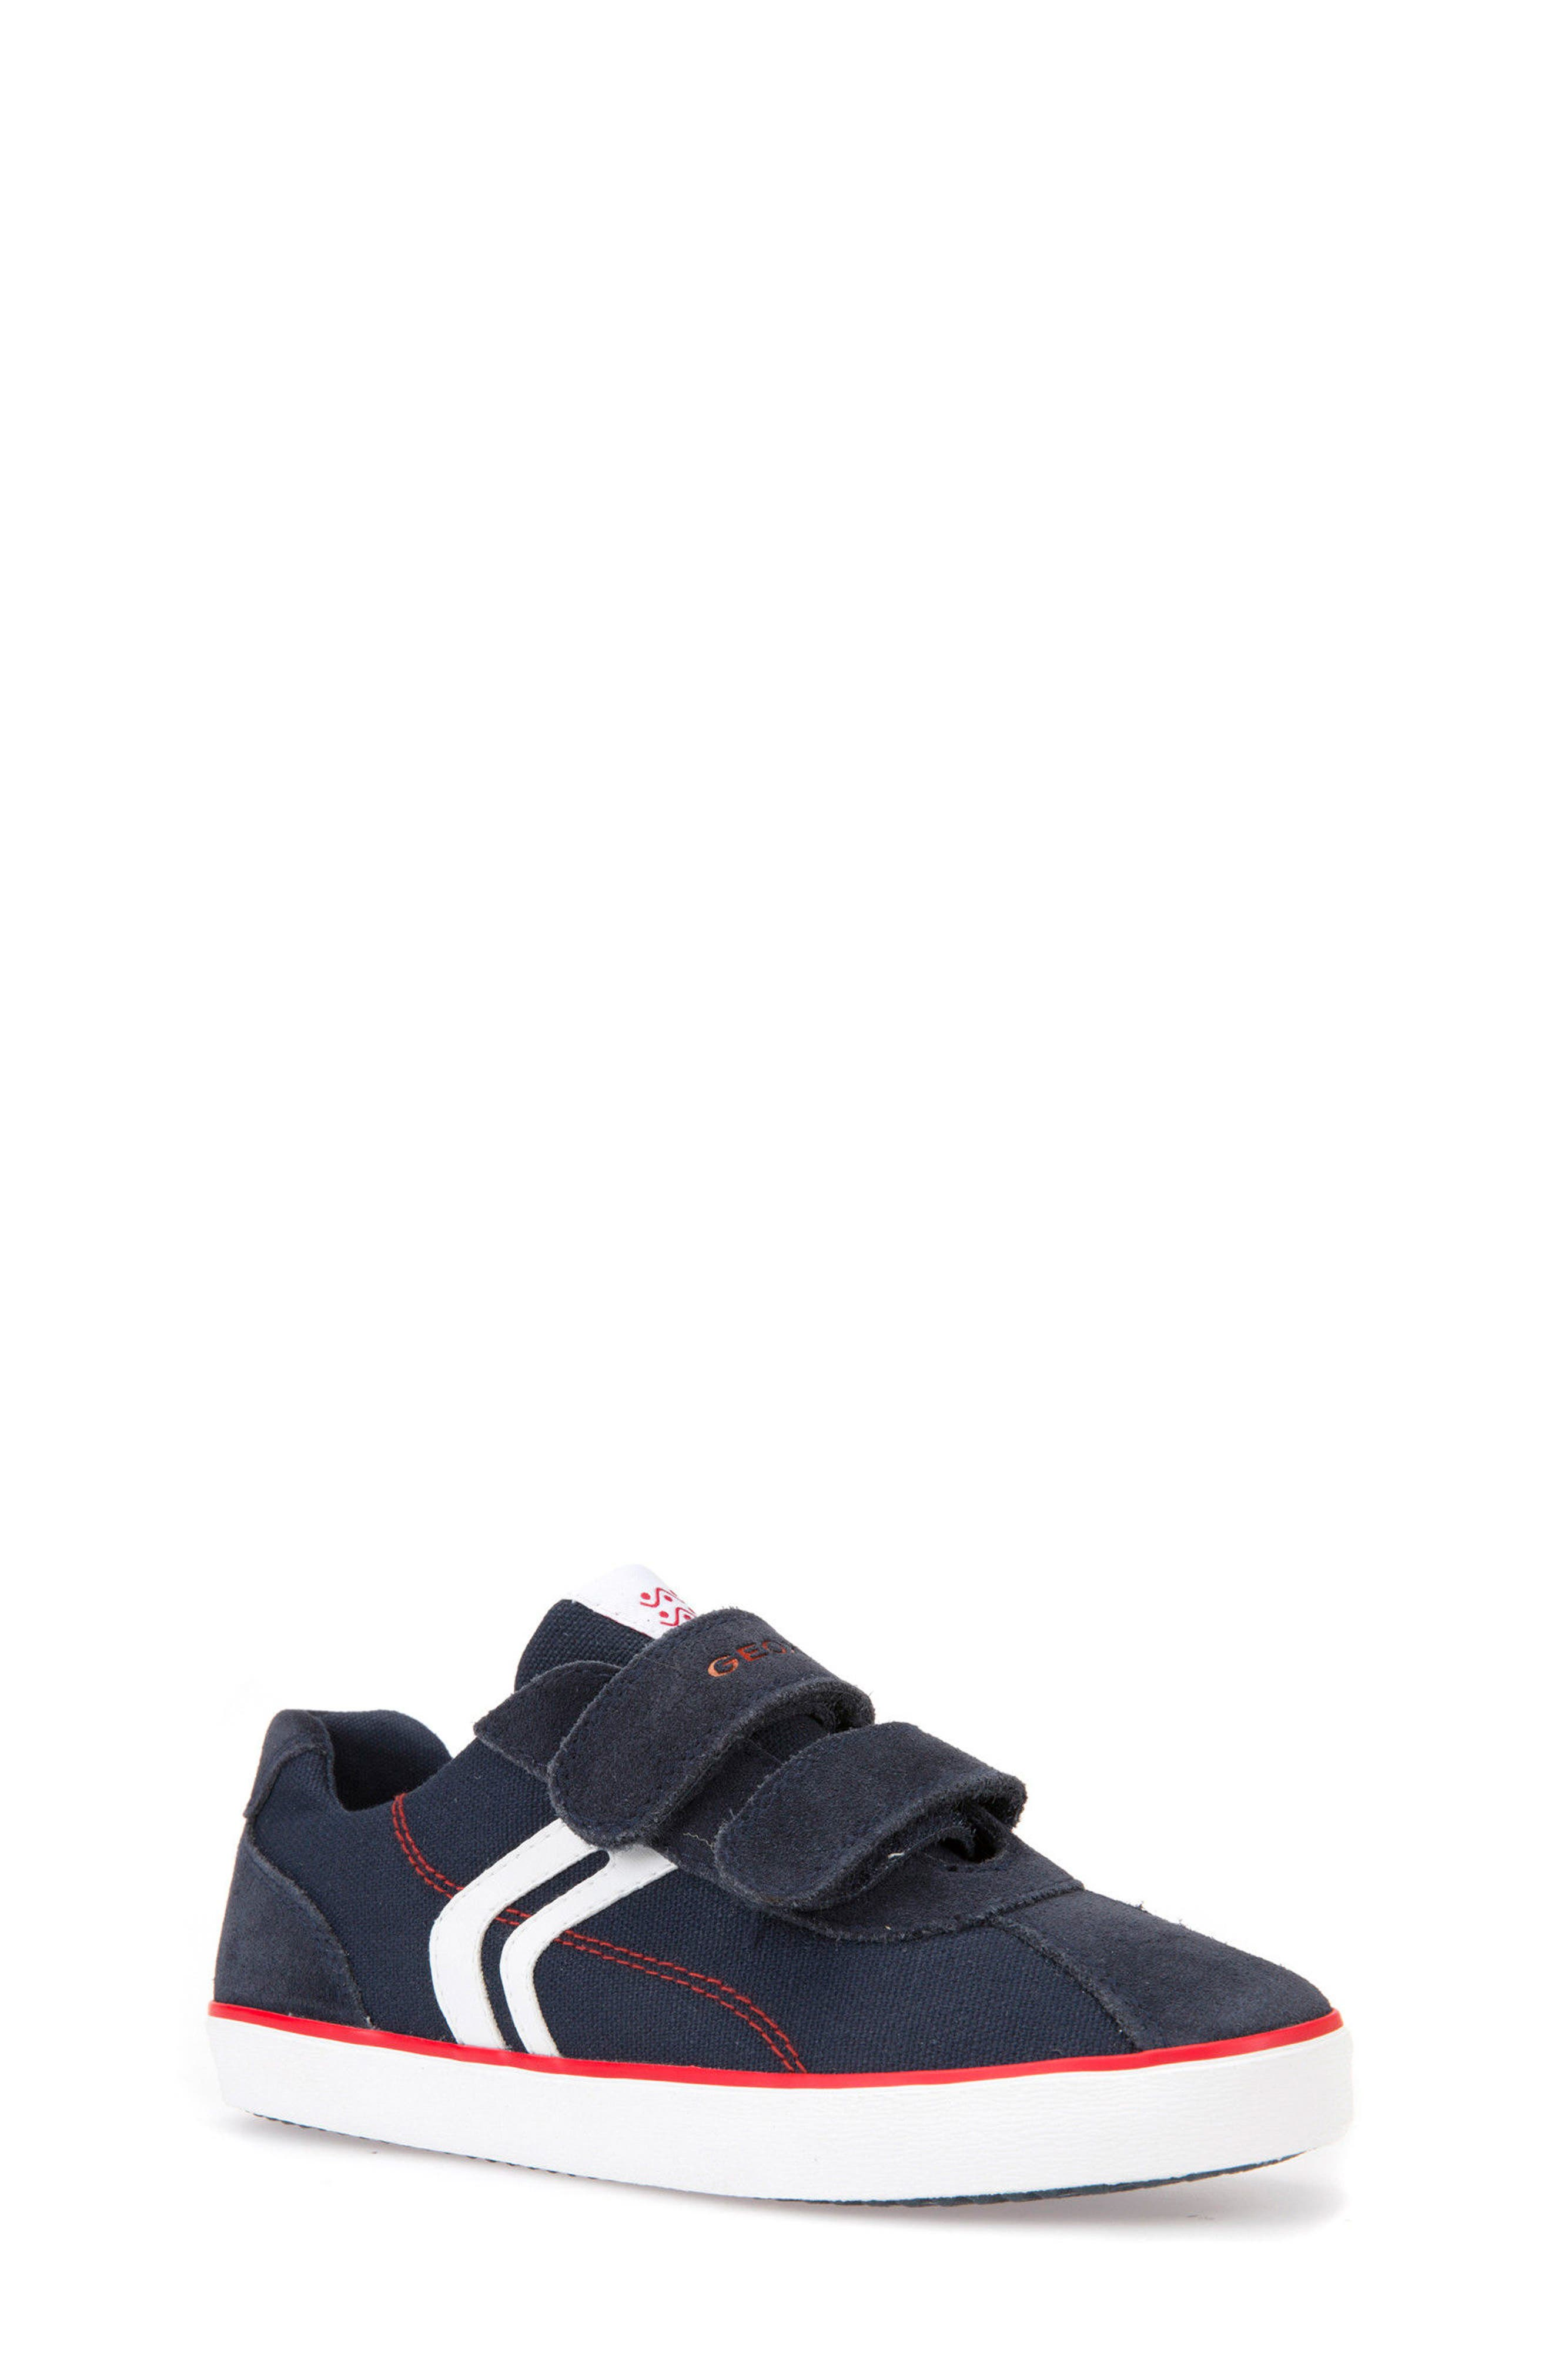 Kilwi Low Top Sneaker,                             Main thumbnail 1, color,                             NAVY/ RED